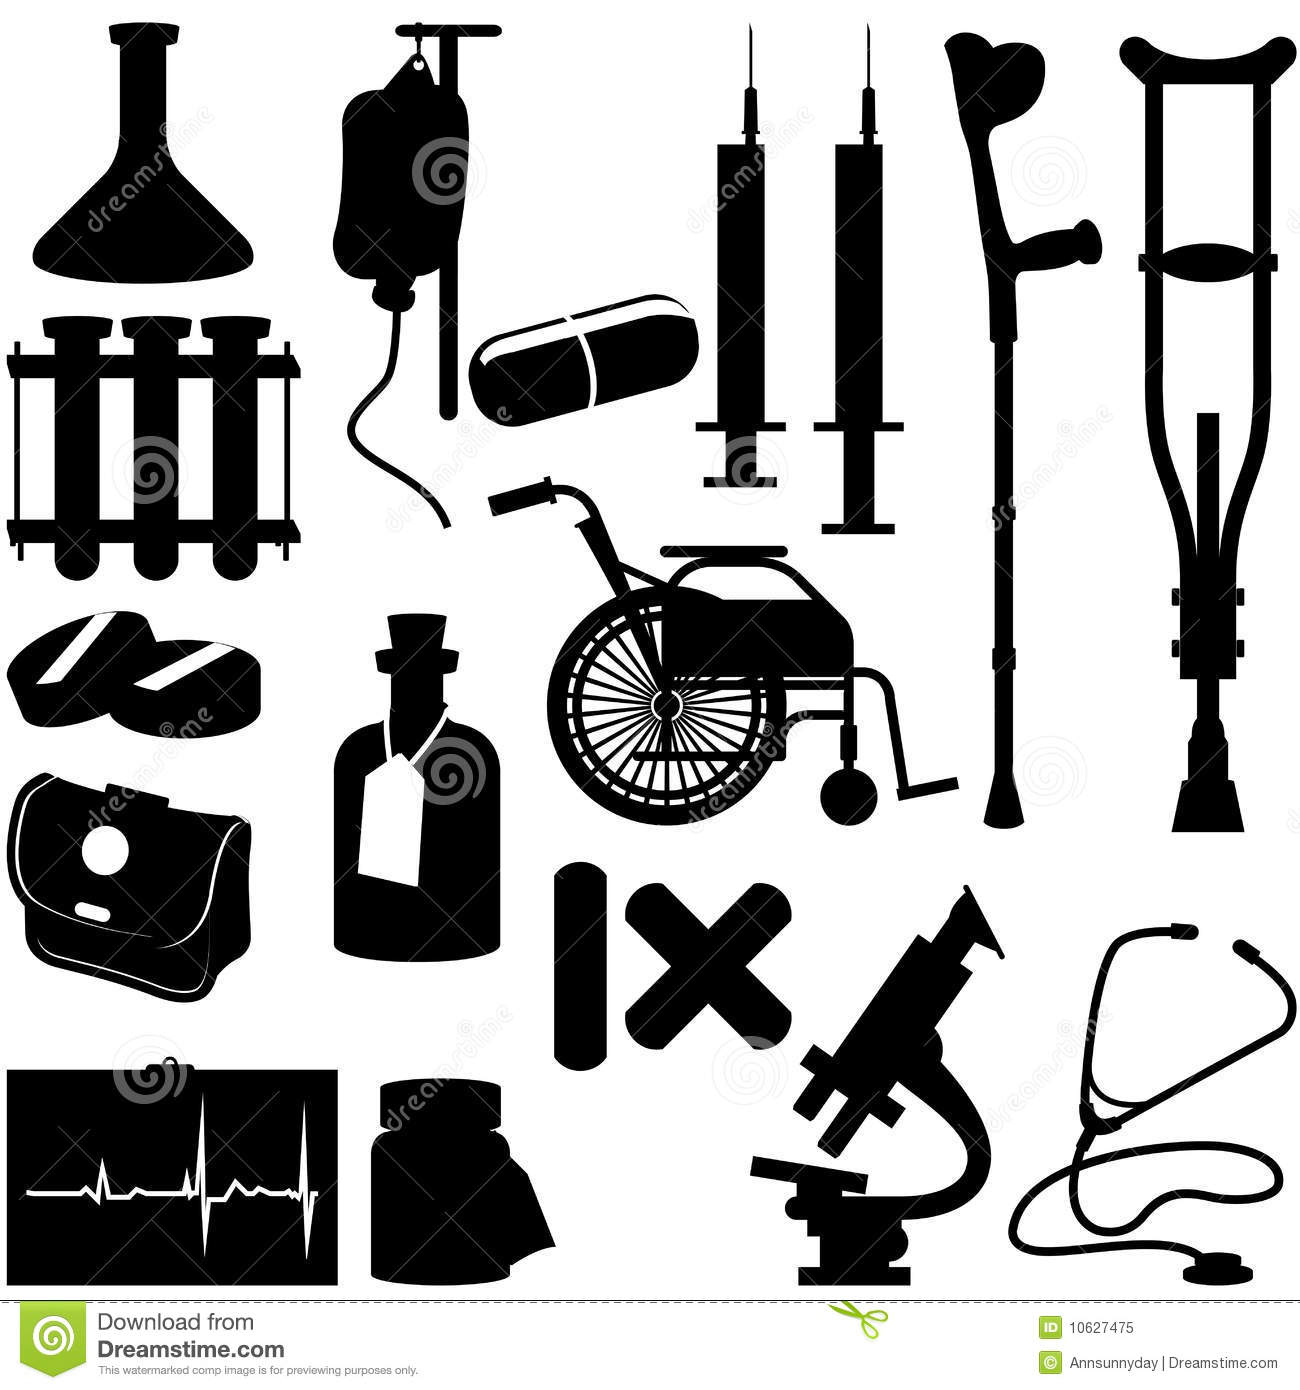 Medical Clip Art free Downloads  Medical Logos Download